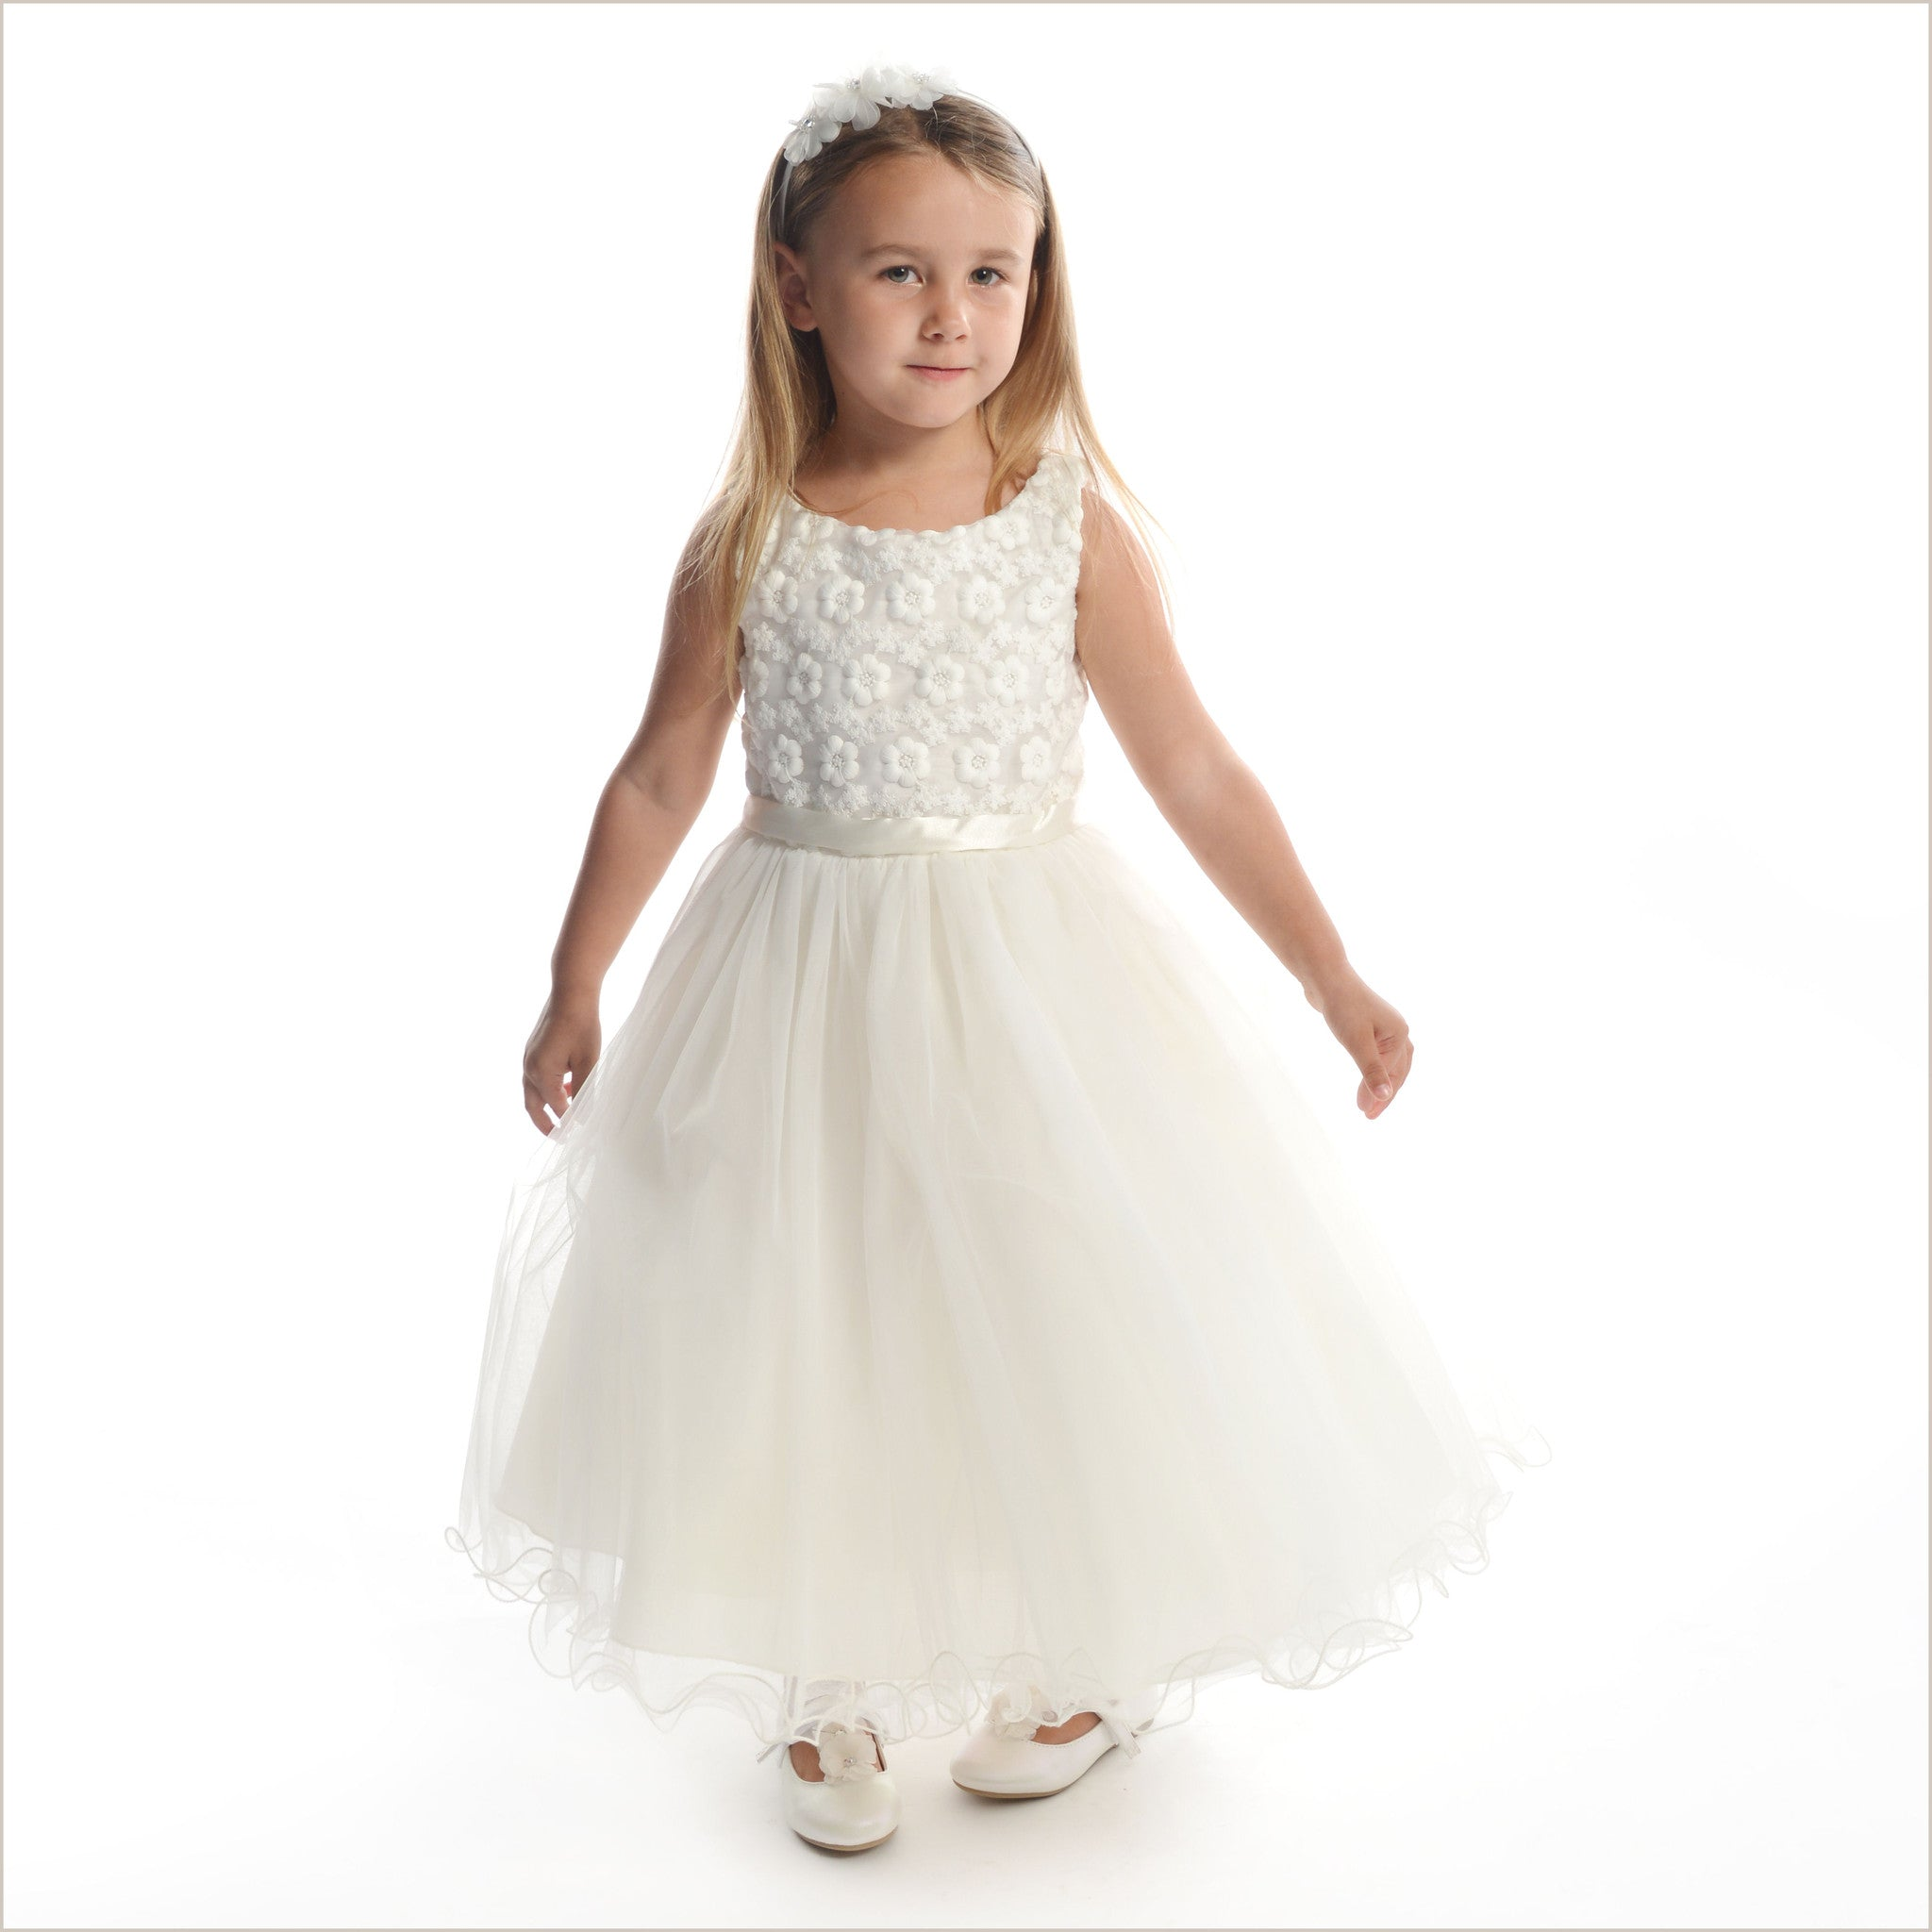 716607e6b874 Ivory Flower Girl Dress Daisy with Floral Bodice for Child Bridesmaids